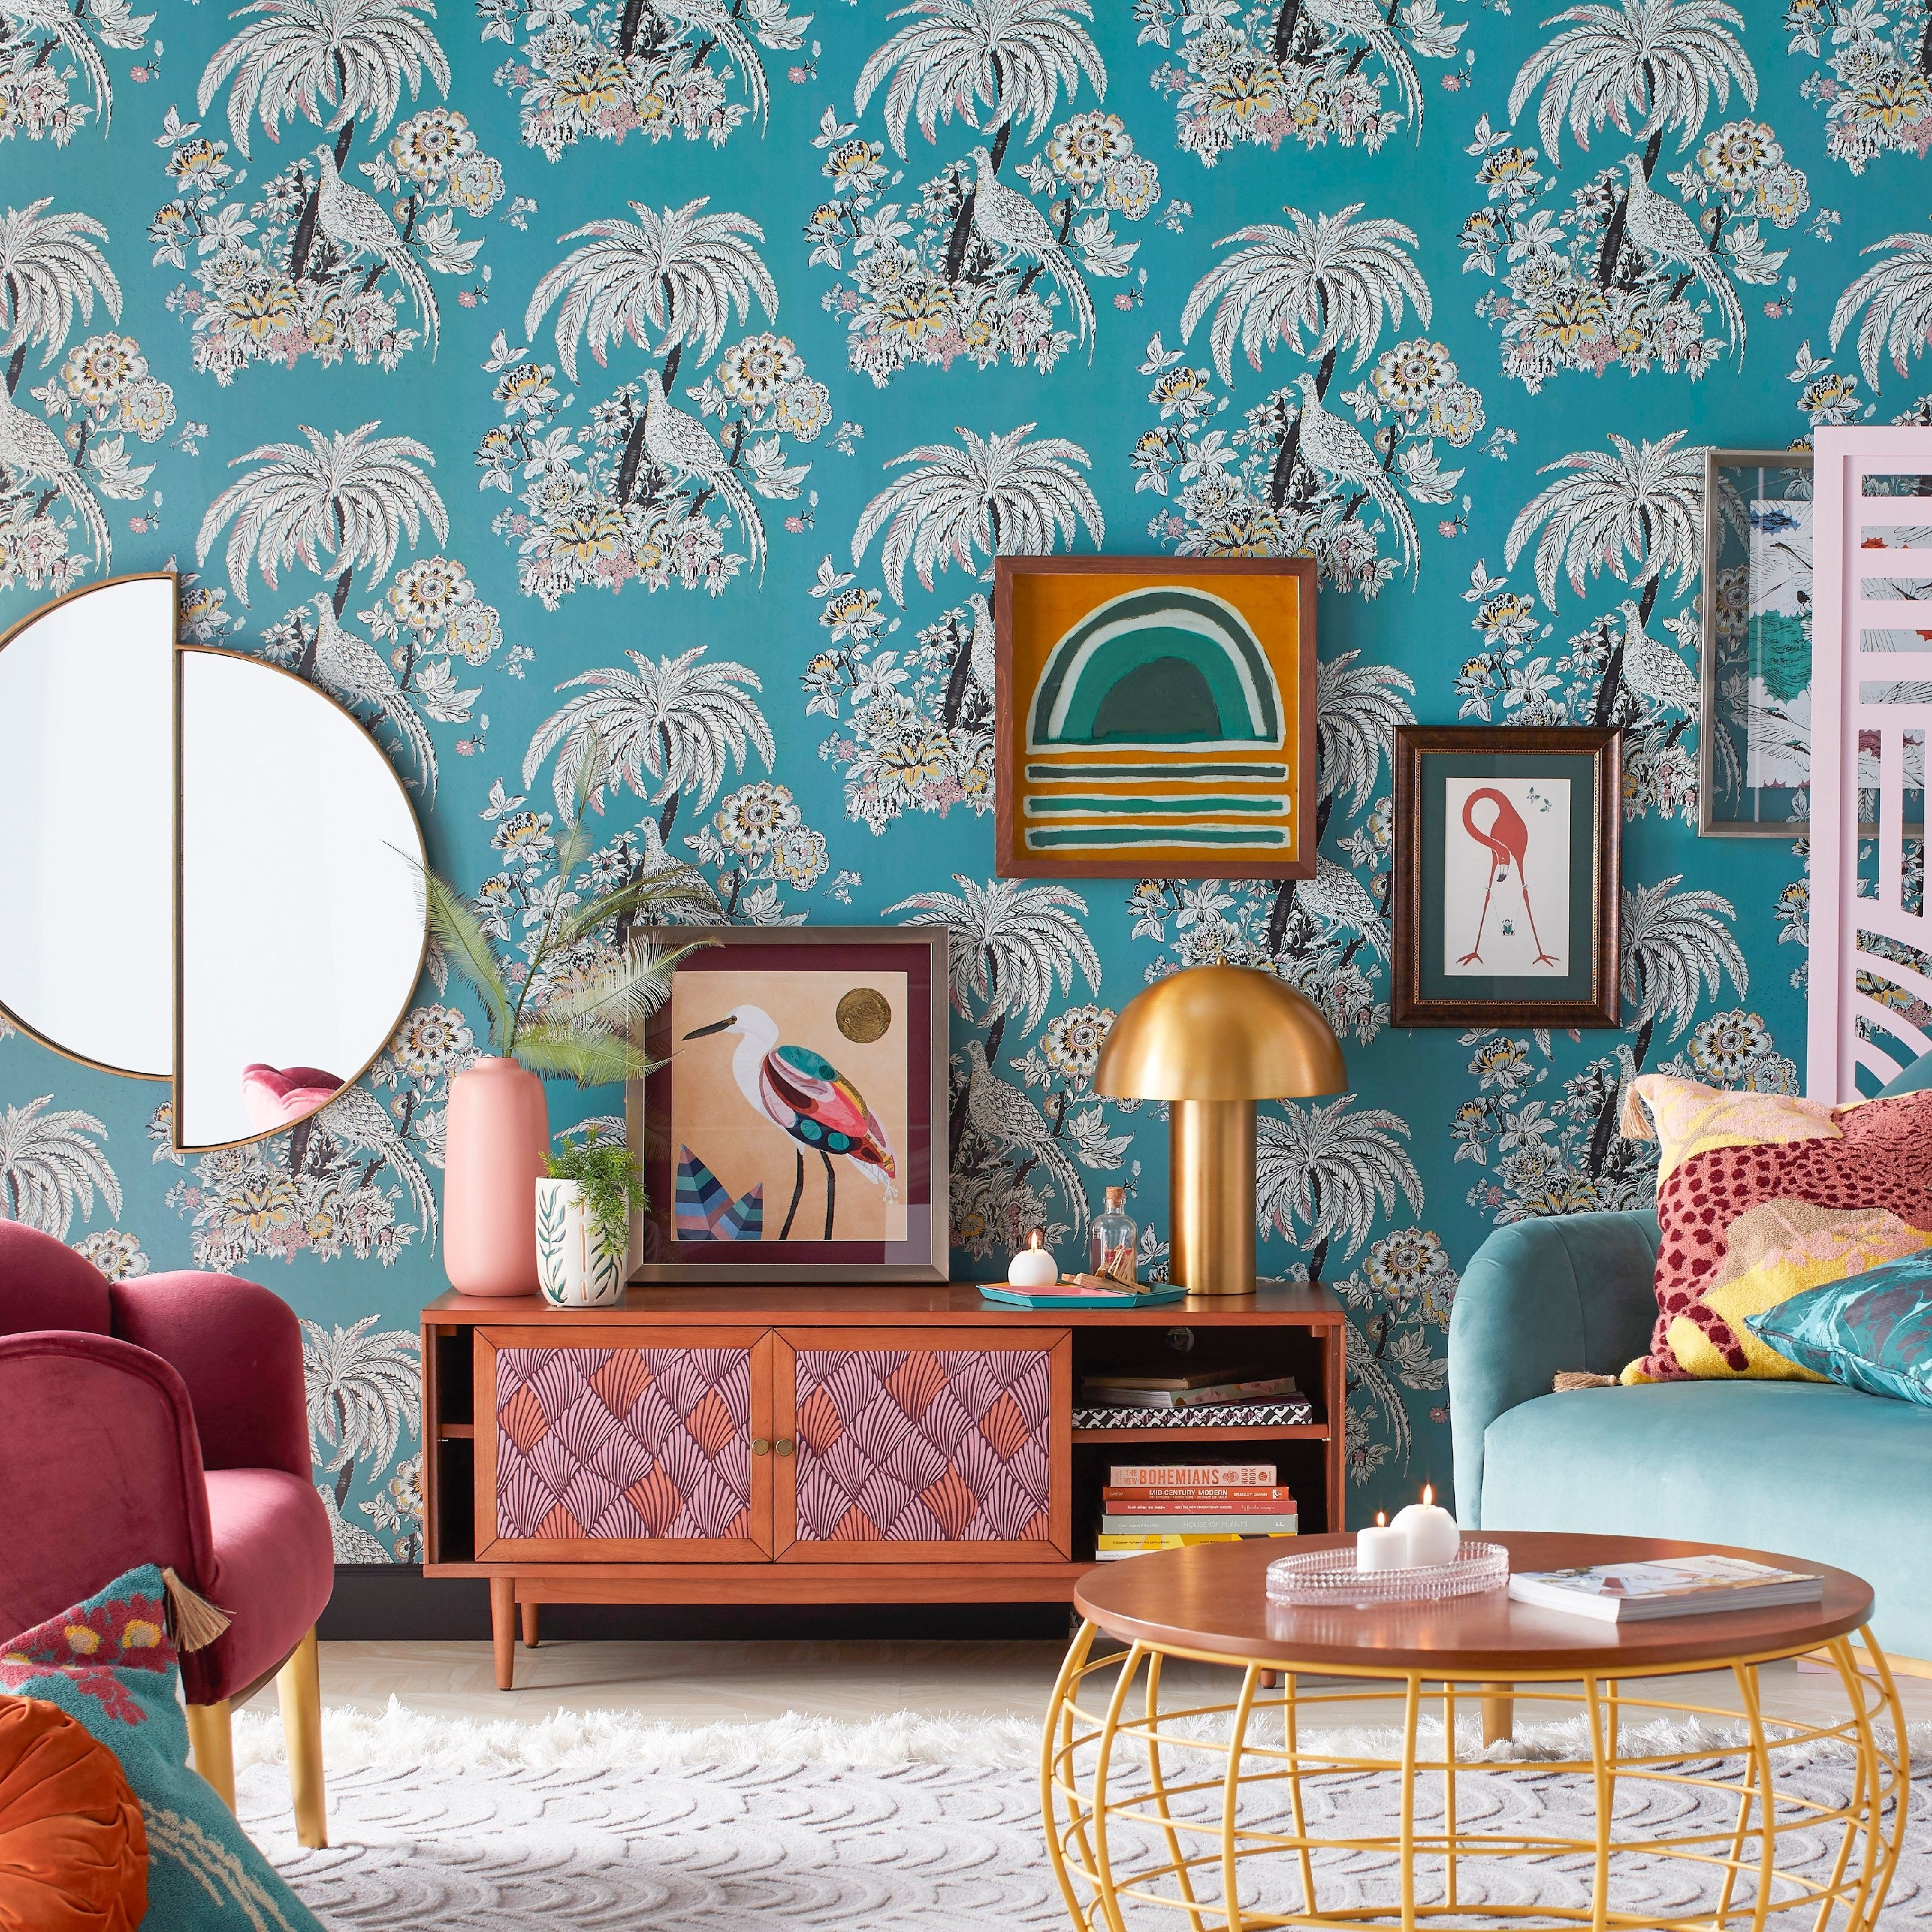 blue wall paper with a pattern of a palm tree, flowers, and a peacock all over it